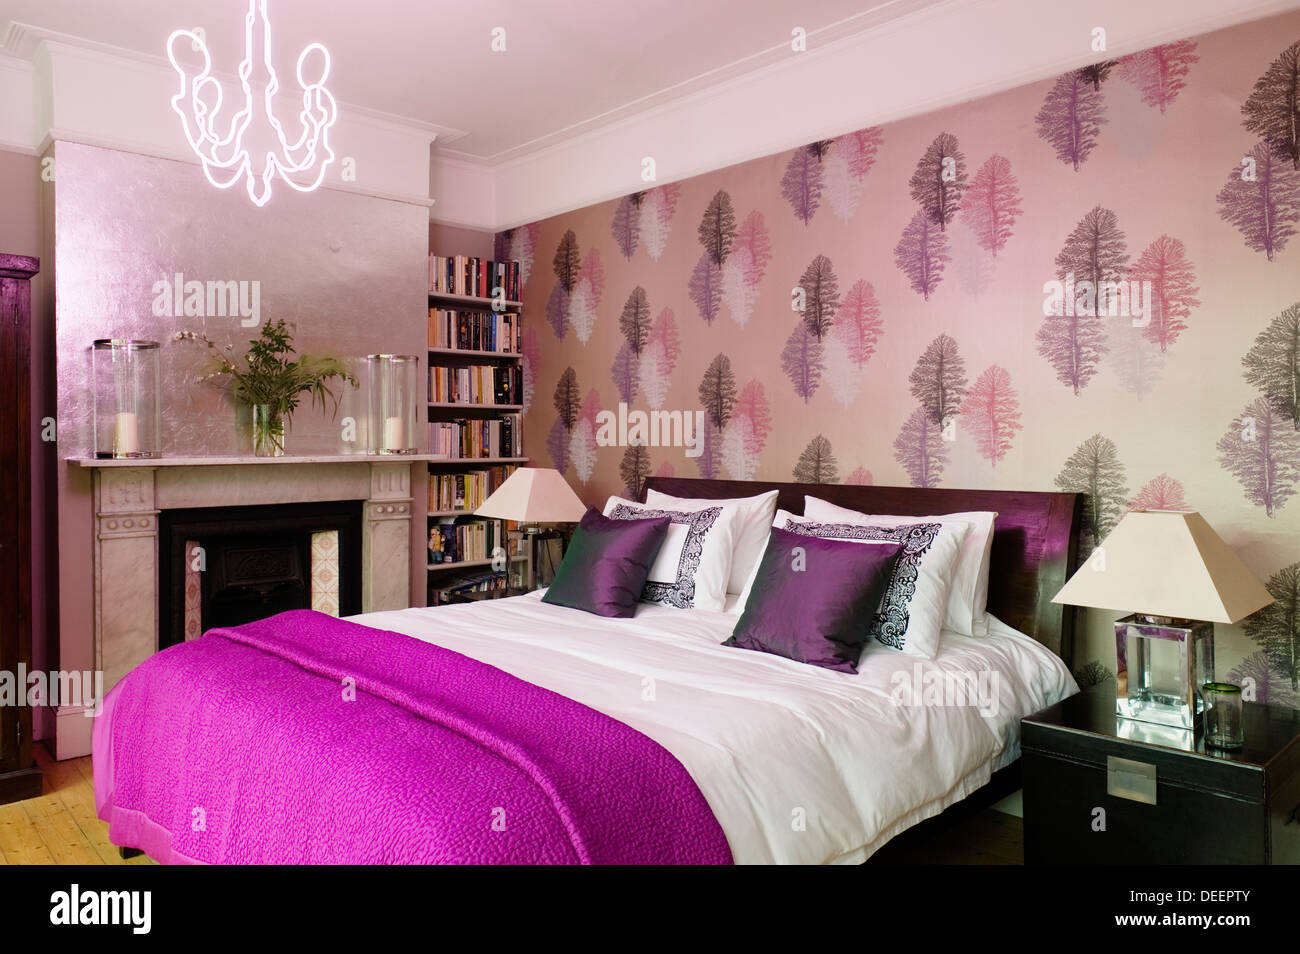 Bedroom accented with bold fuscia and muted metallics - Stock Image